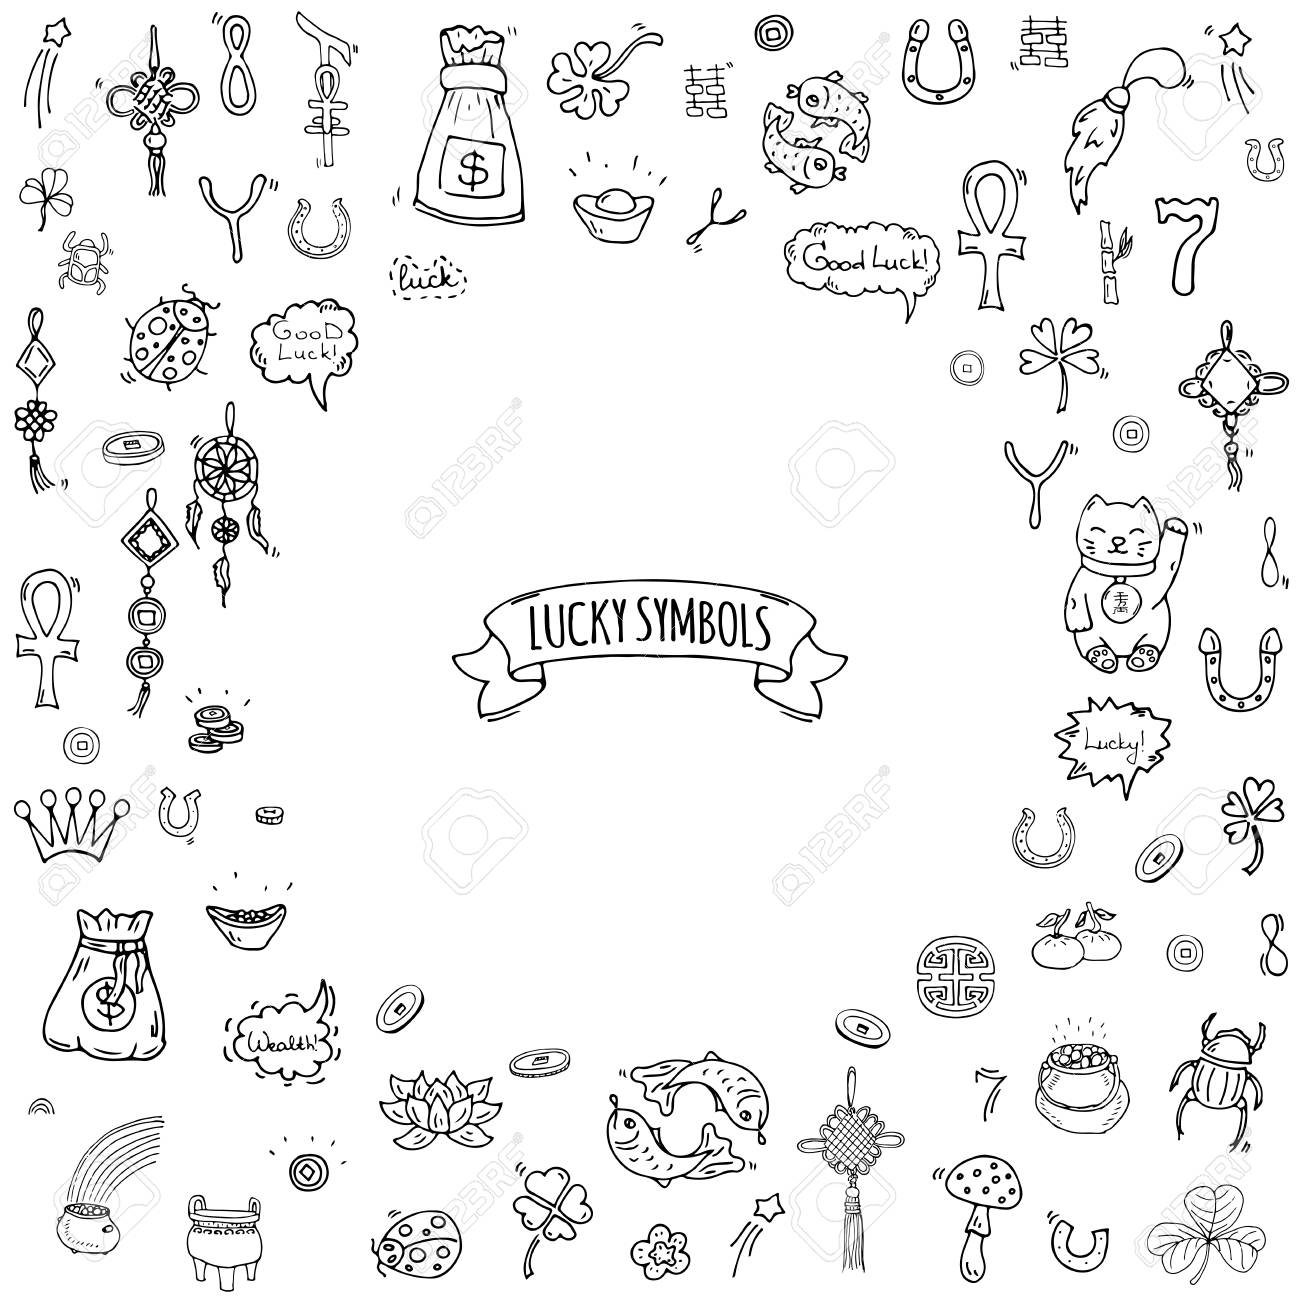 Hand drawn doodle lucky symbols icon set vector illustration hand drawn doodle lucky symbols icon set vector illustration isolated luck symbols collection cartoon wealth element biocorpaavc Image collections